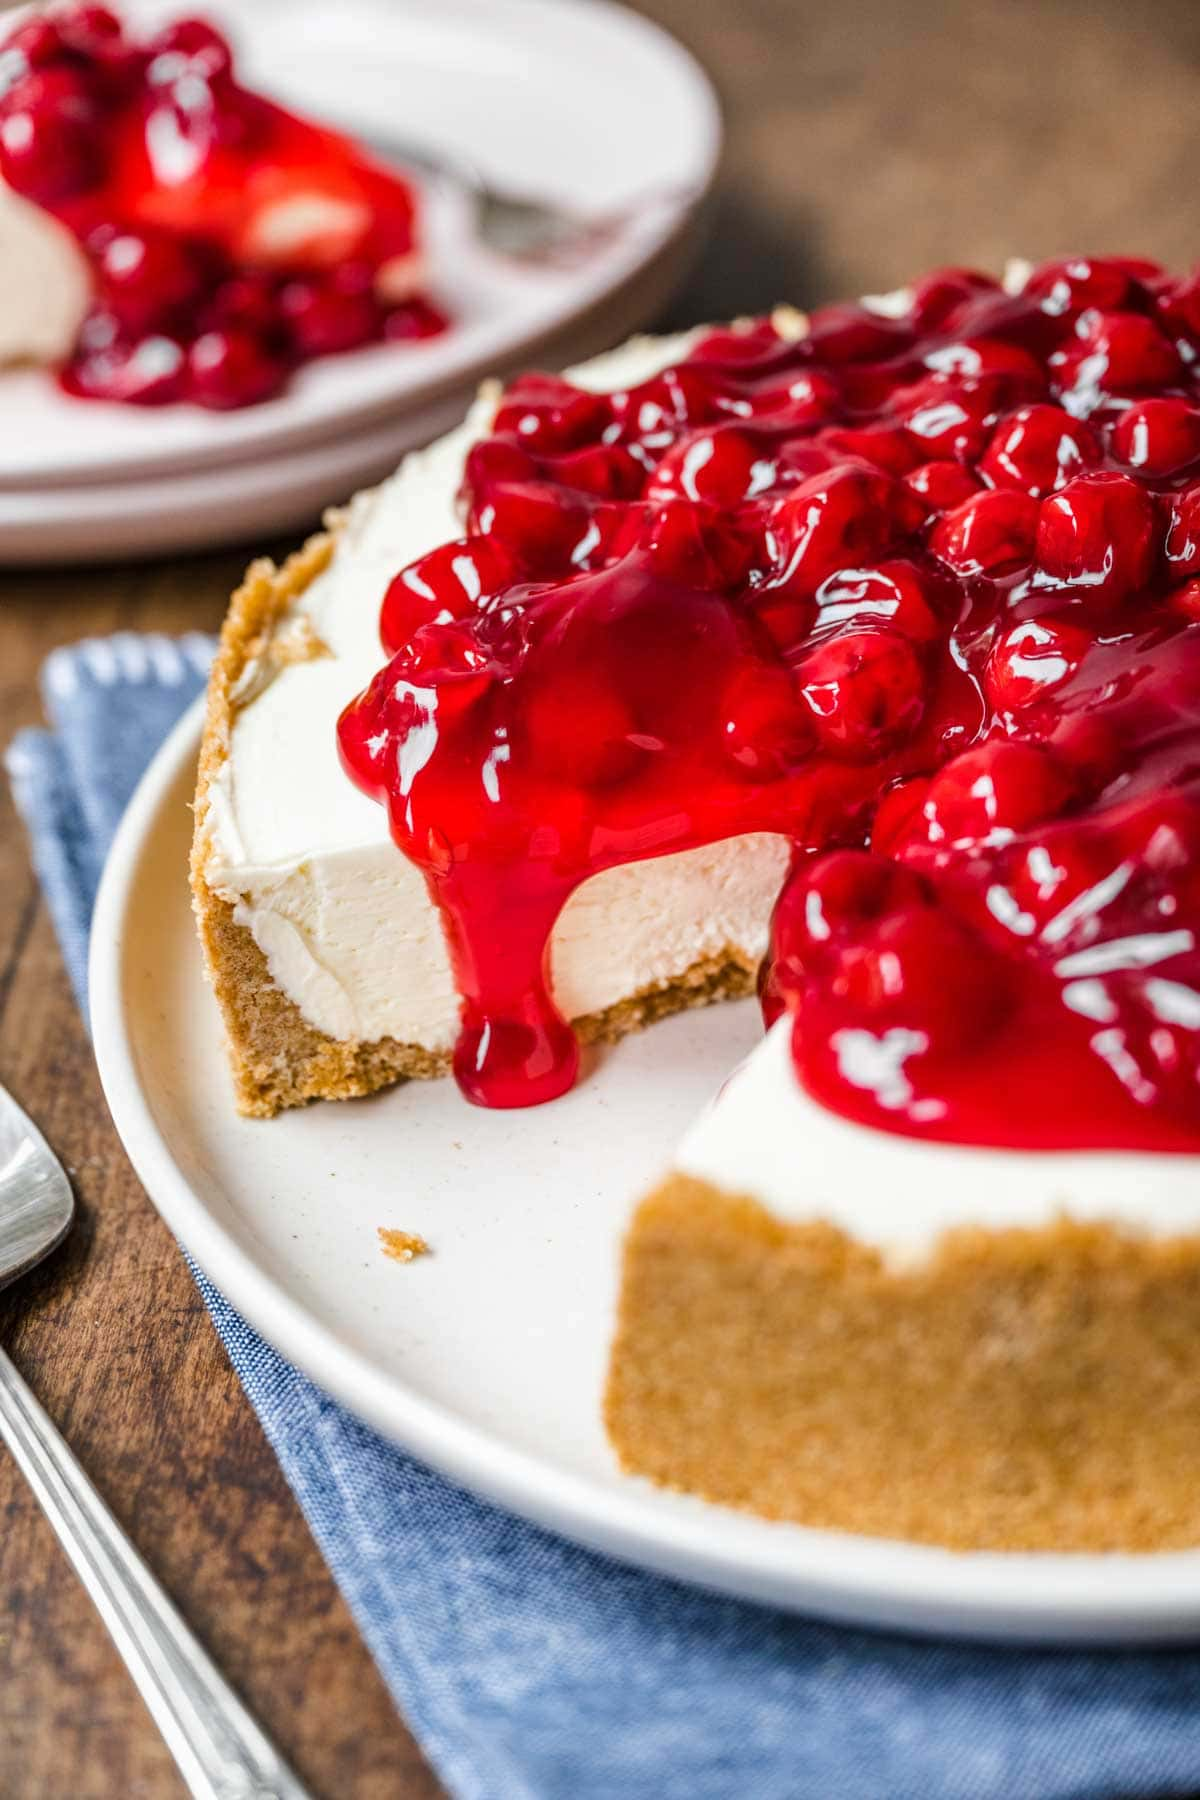 No Bake Cherry Cheesecake on serving plate with slice removed